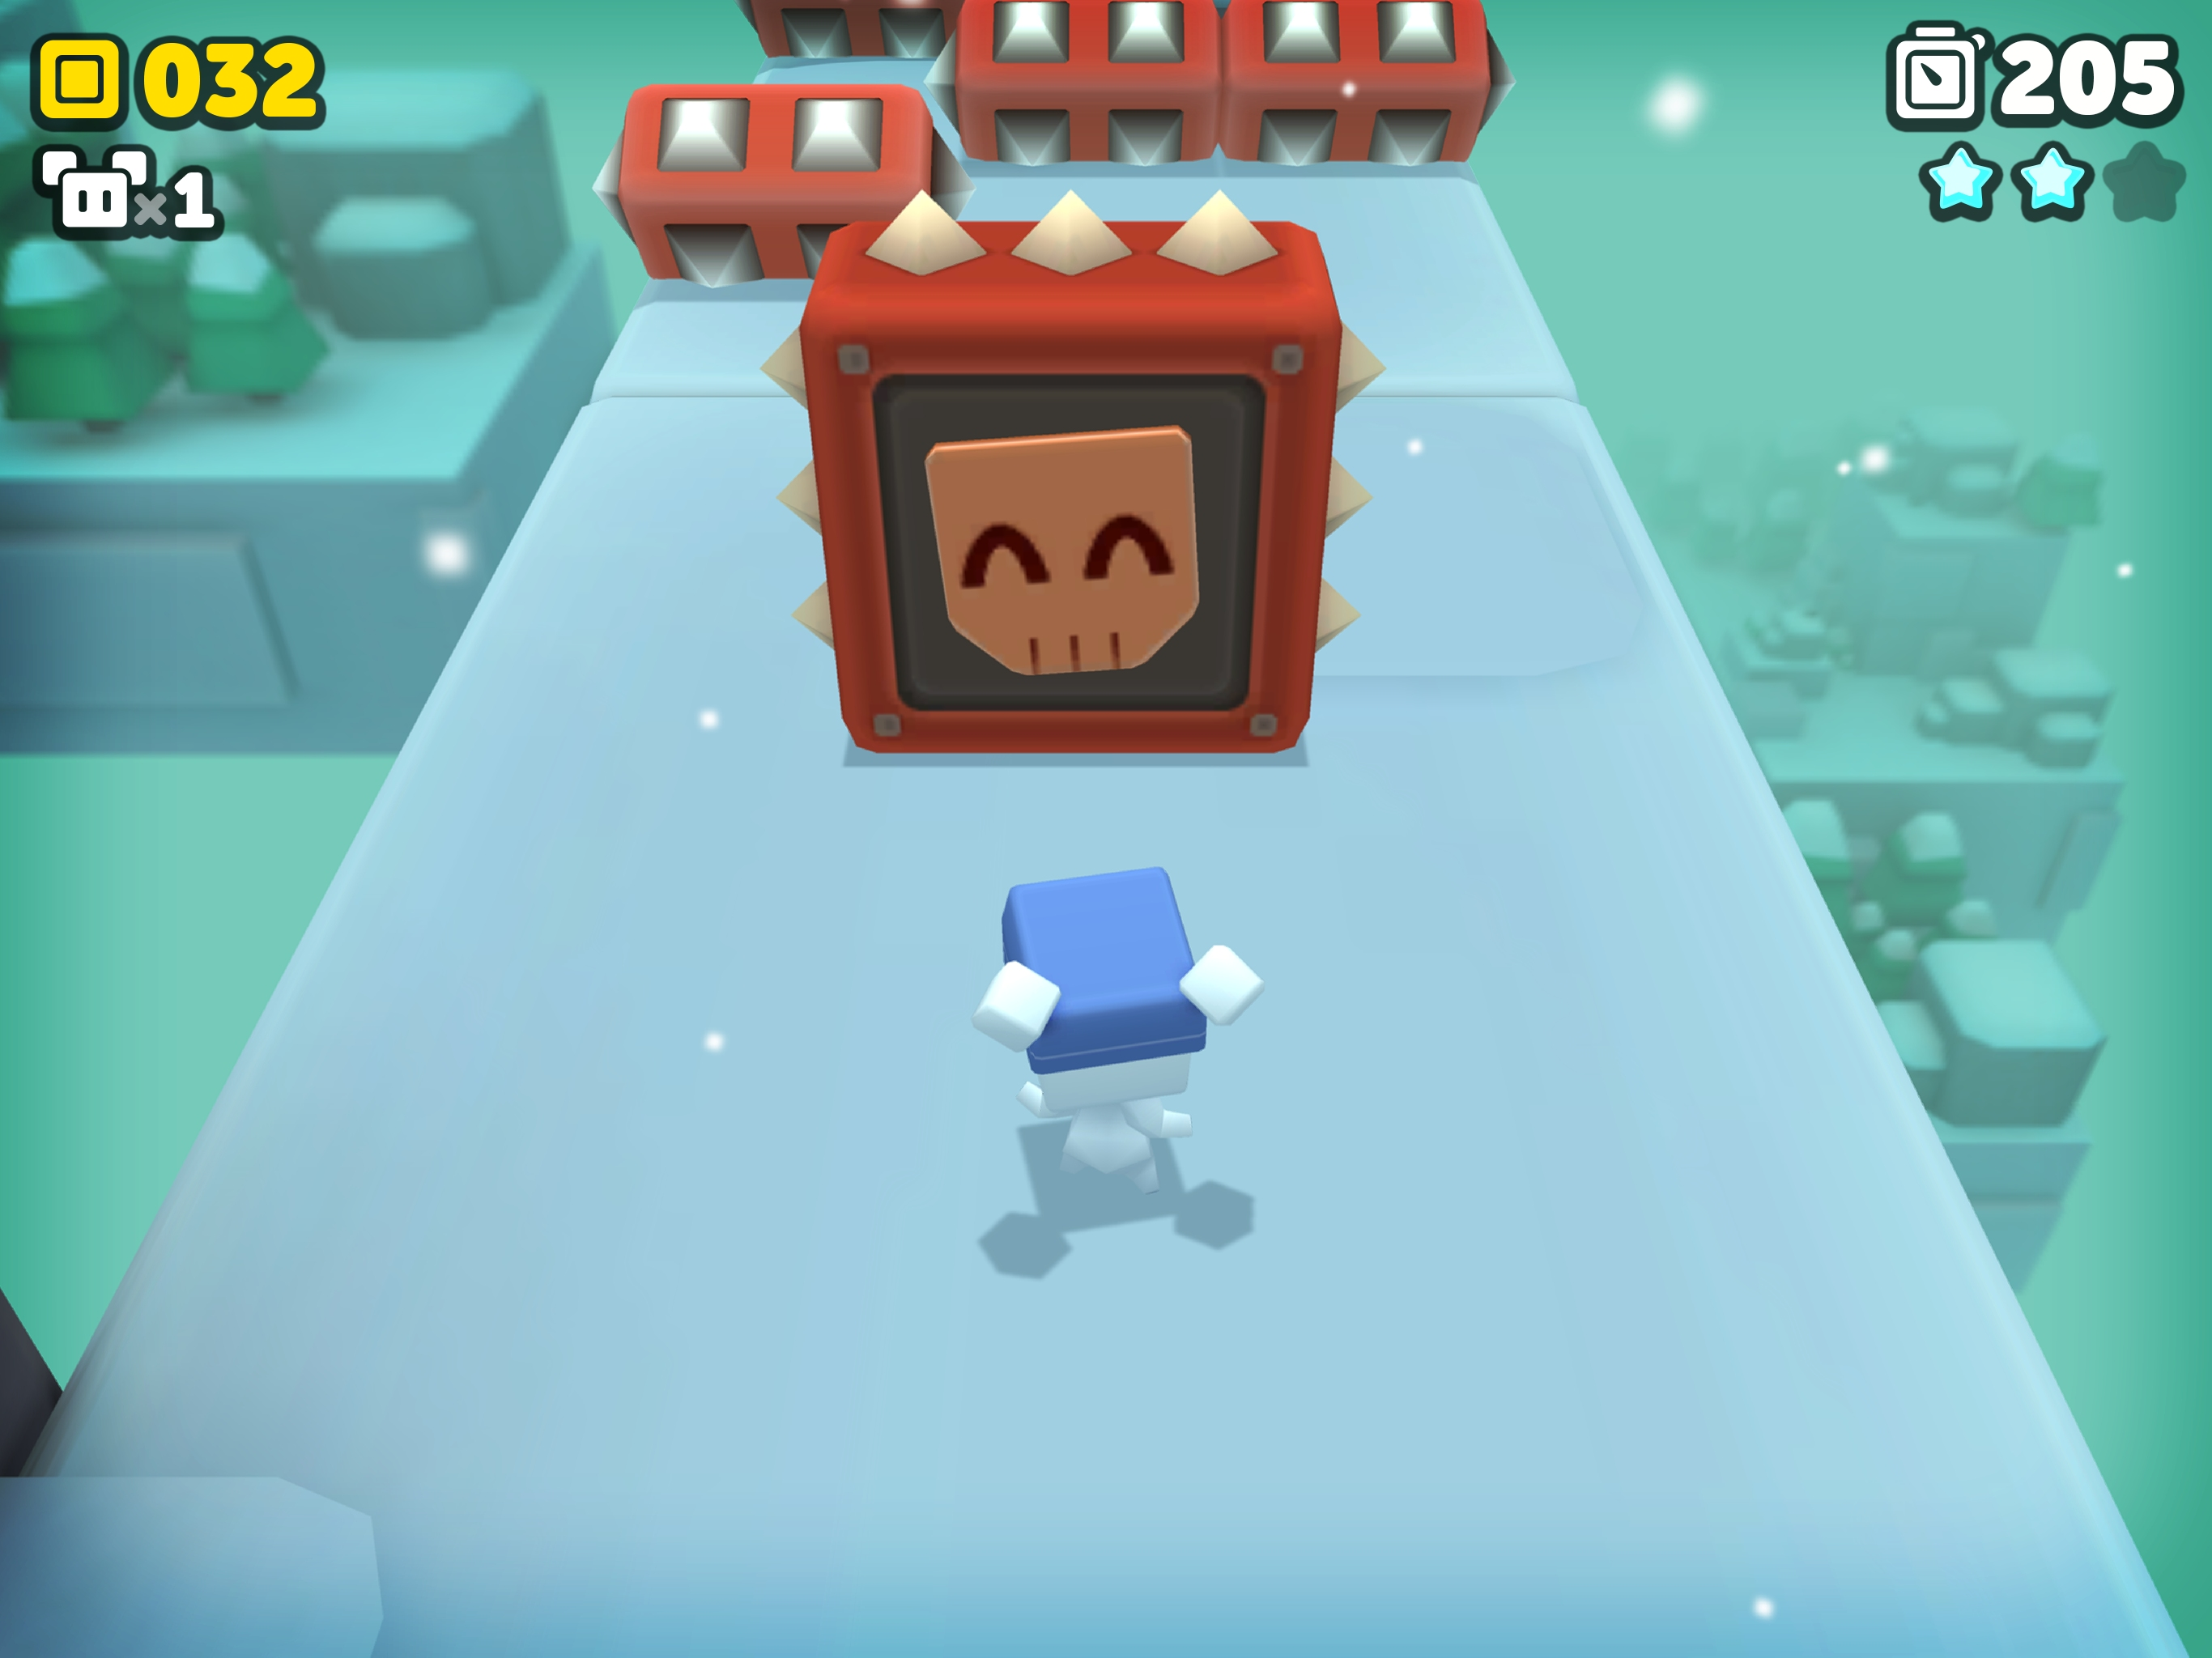 Suzy Cube' Review: This 3D Platformer Controls So Well, It's